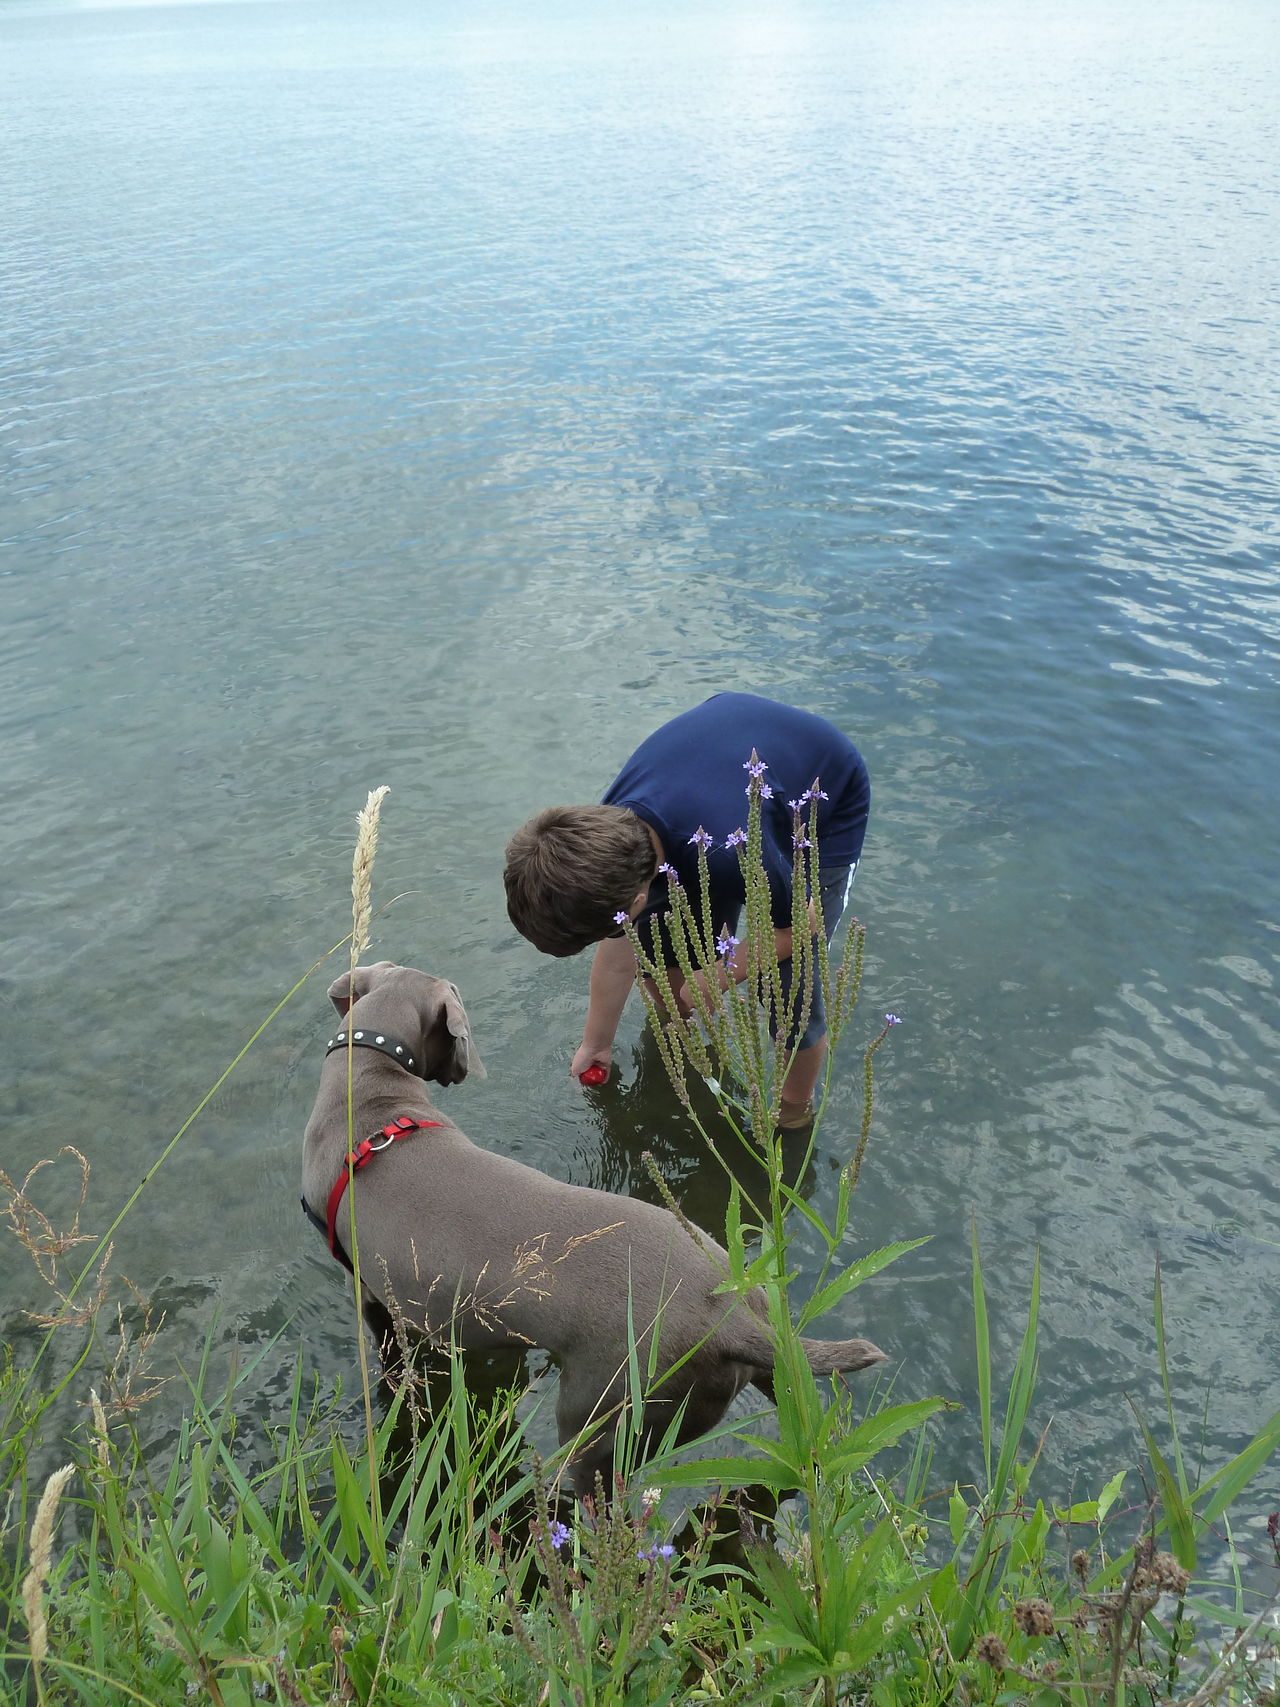 A boy and his dog playing in the water. Beauty In Nature Boy Boyanddog Day Dog Love Eyemdog Grass High Angle View Lake Lakeshore Nature Outdoors Tranquil Scene Tranquility Water Waterreflection Weimaraner Weimaranerlove Weimaraners